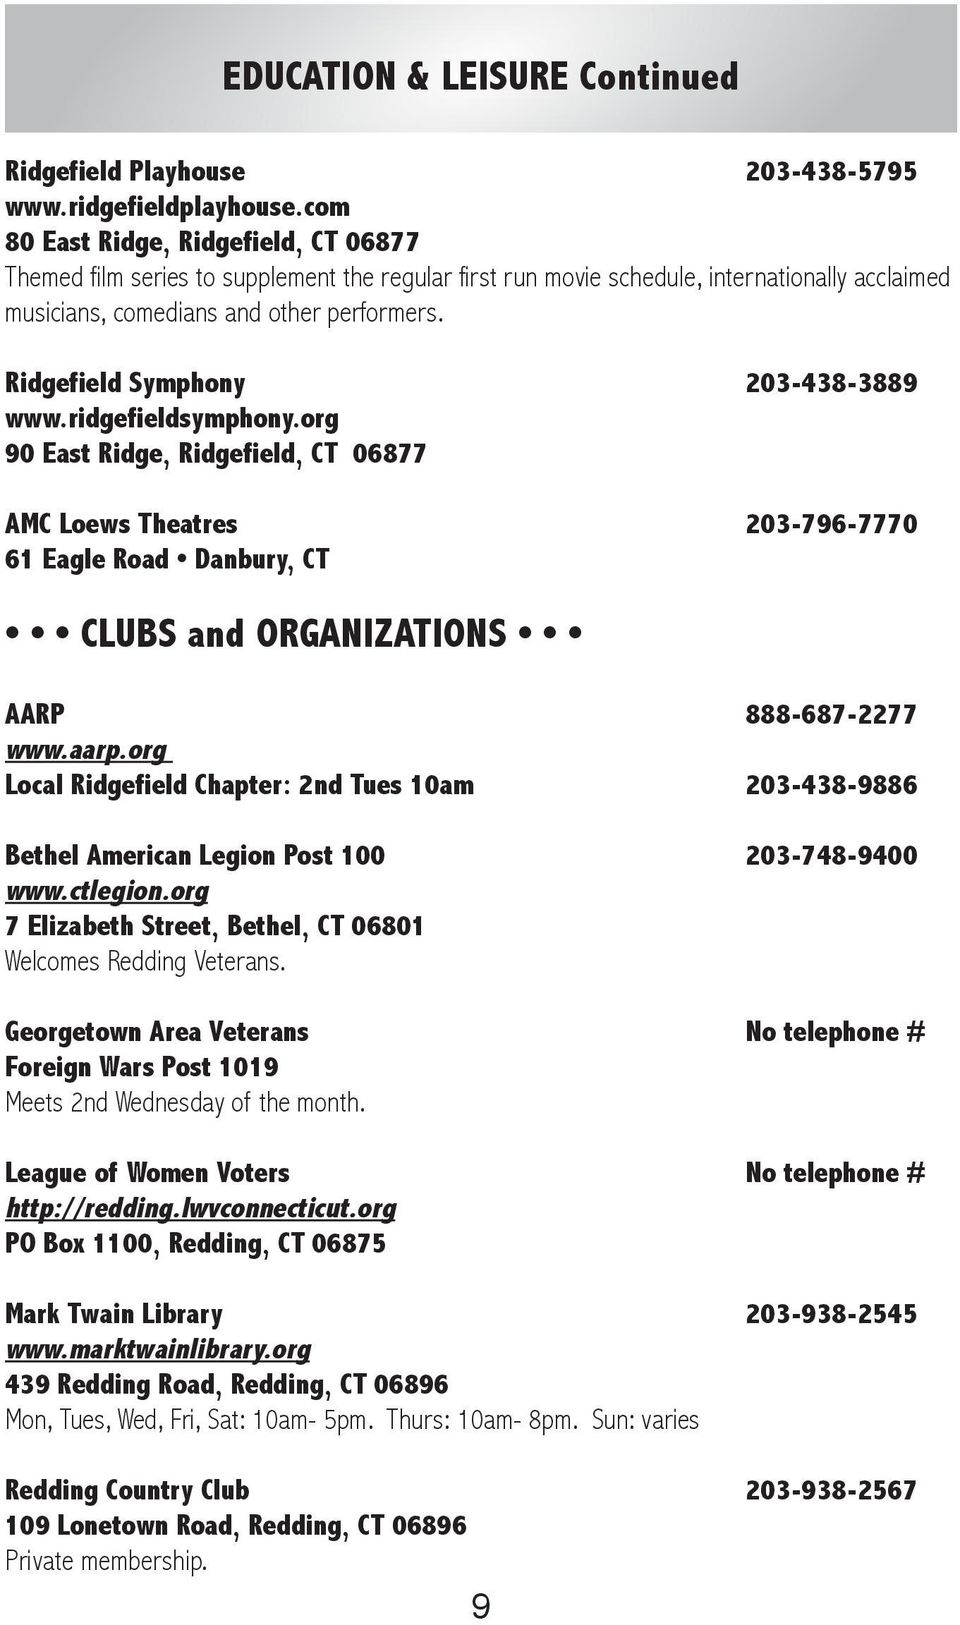 Ridgefield Symphony 203-438-3889 www.ridgefieldsymphony.org 90 East Ridge, Ridgefield, CT 06877 AMC Loews Theatres 203-796-7770 61 Eagle Road Danbury, CT CLUBS and ORGANIZATIONS AARP 888-687-2277 www.